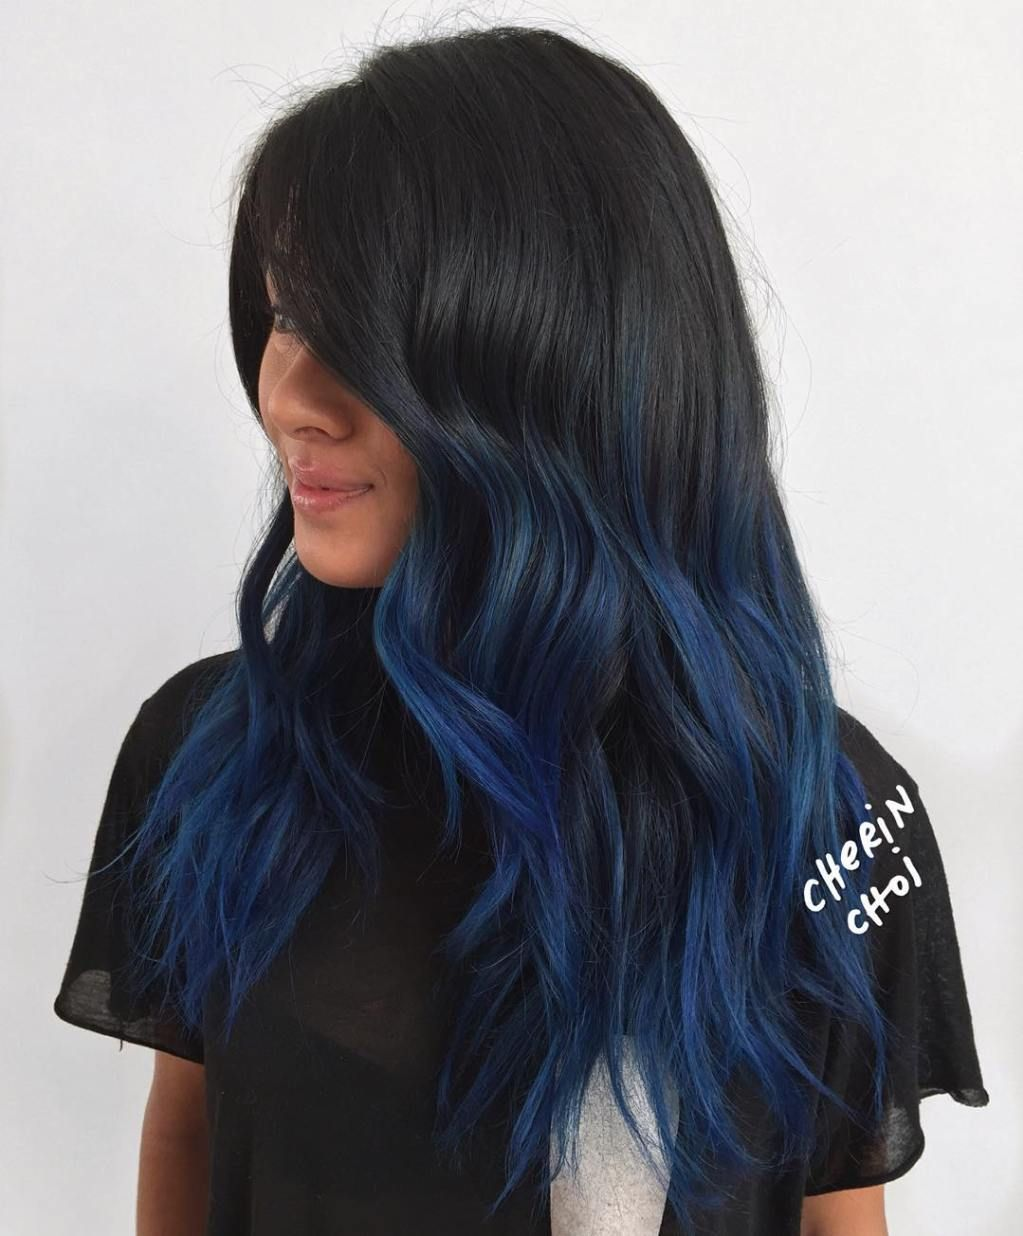 40 Fairy Like Blue Ombre Hairstyles In 2020 Blue Ombre Hair